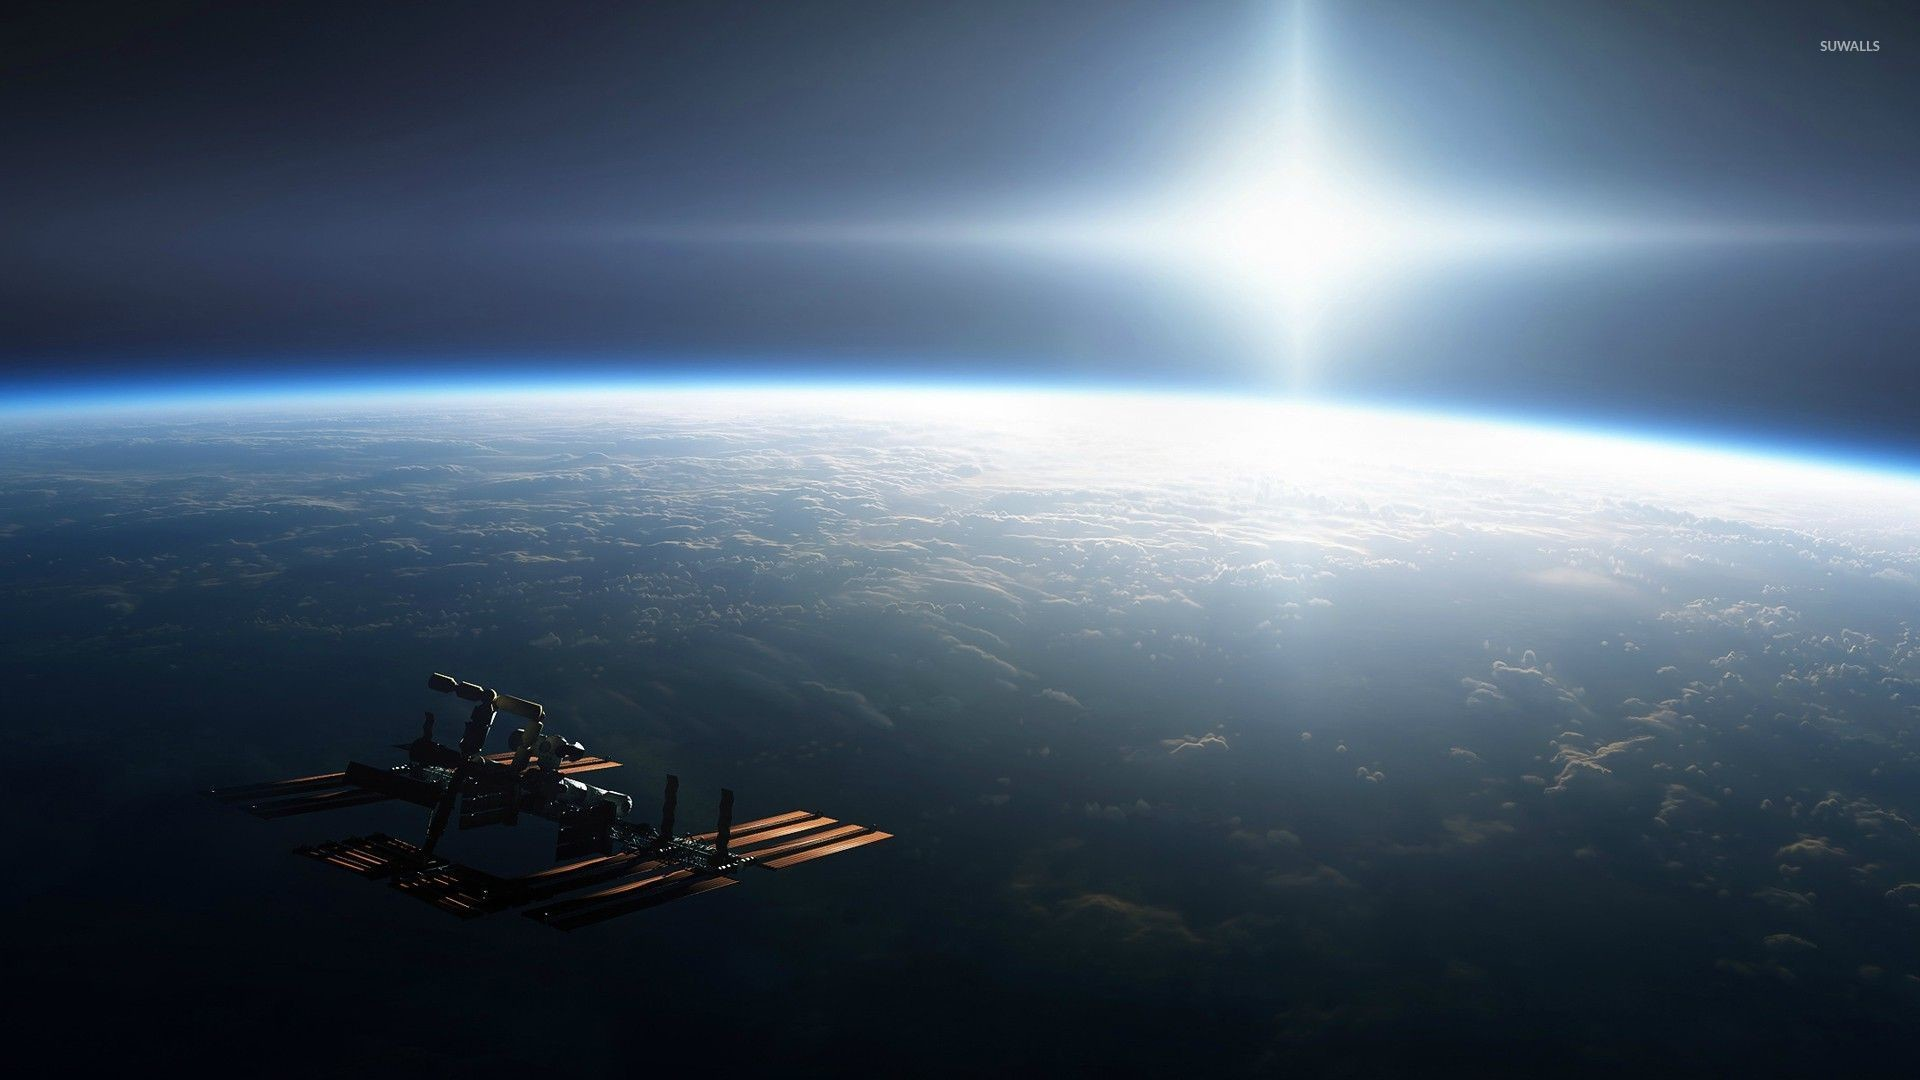 1920x1080 International Space Station orbiting Earth wallpaper